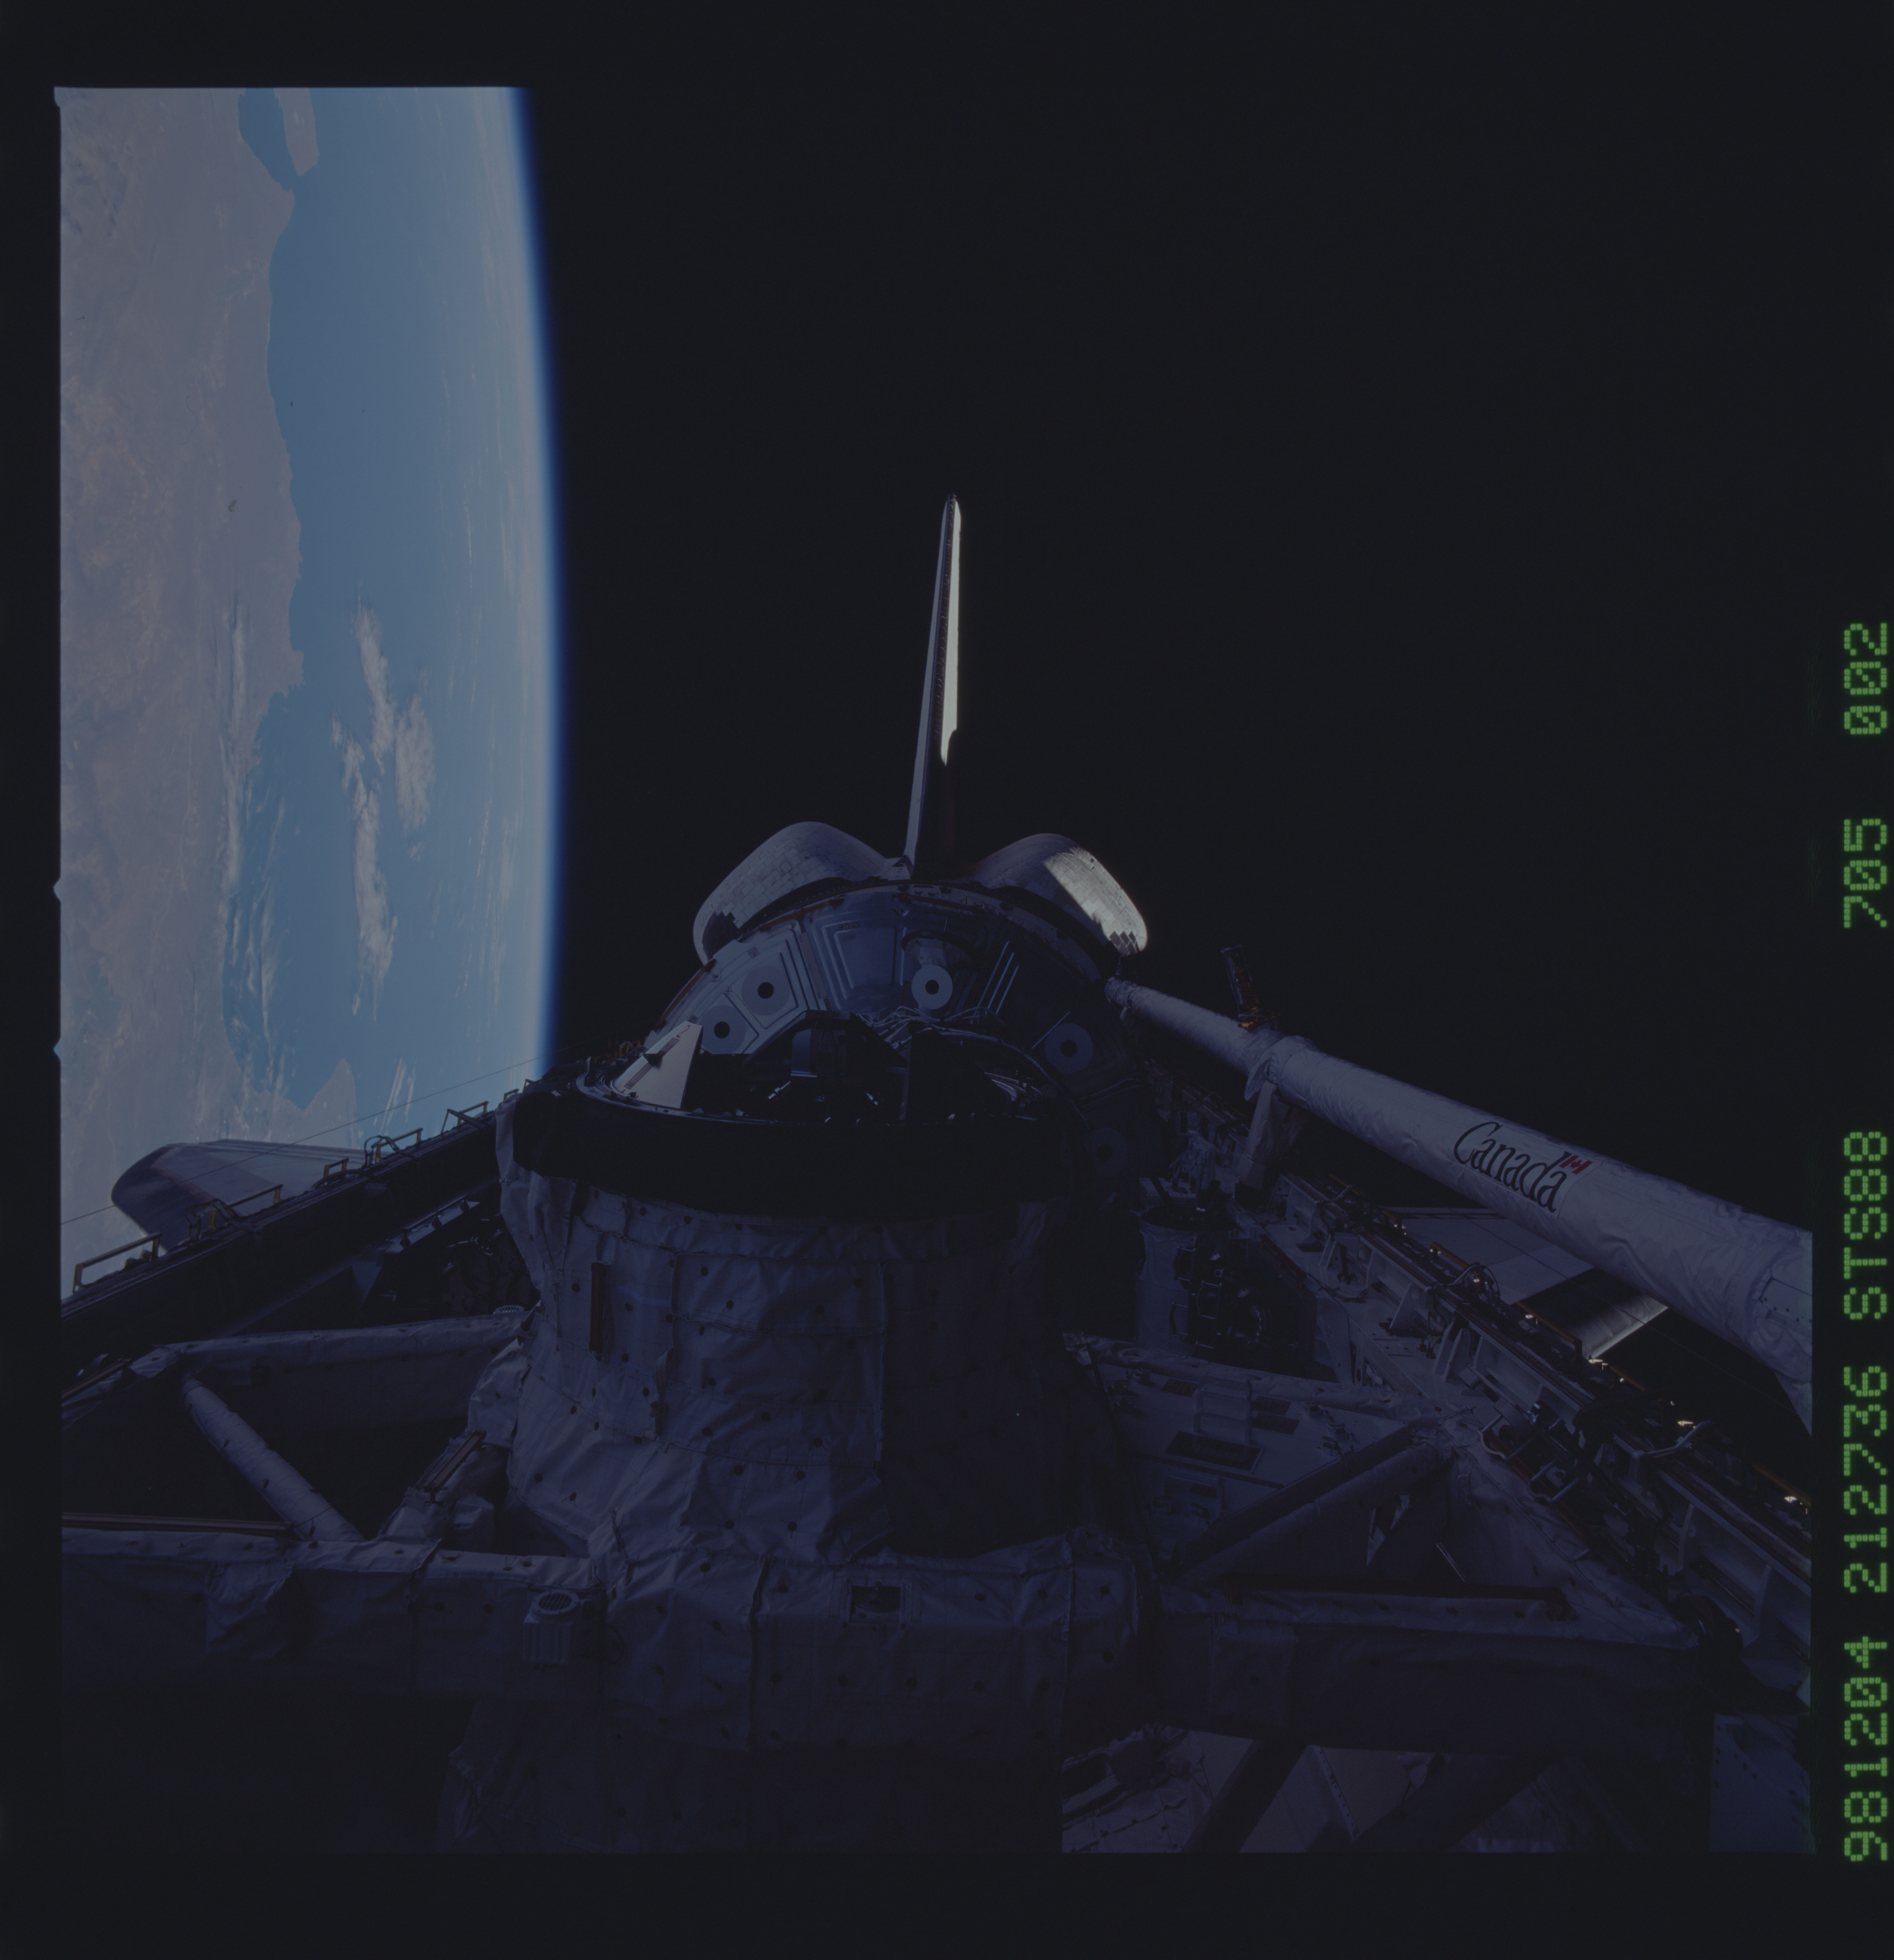 STS088-705-002 - STS-088 - Dark views of Node 1/Unity module in payload bay